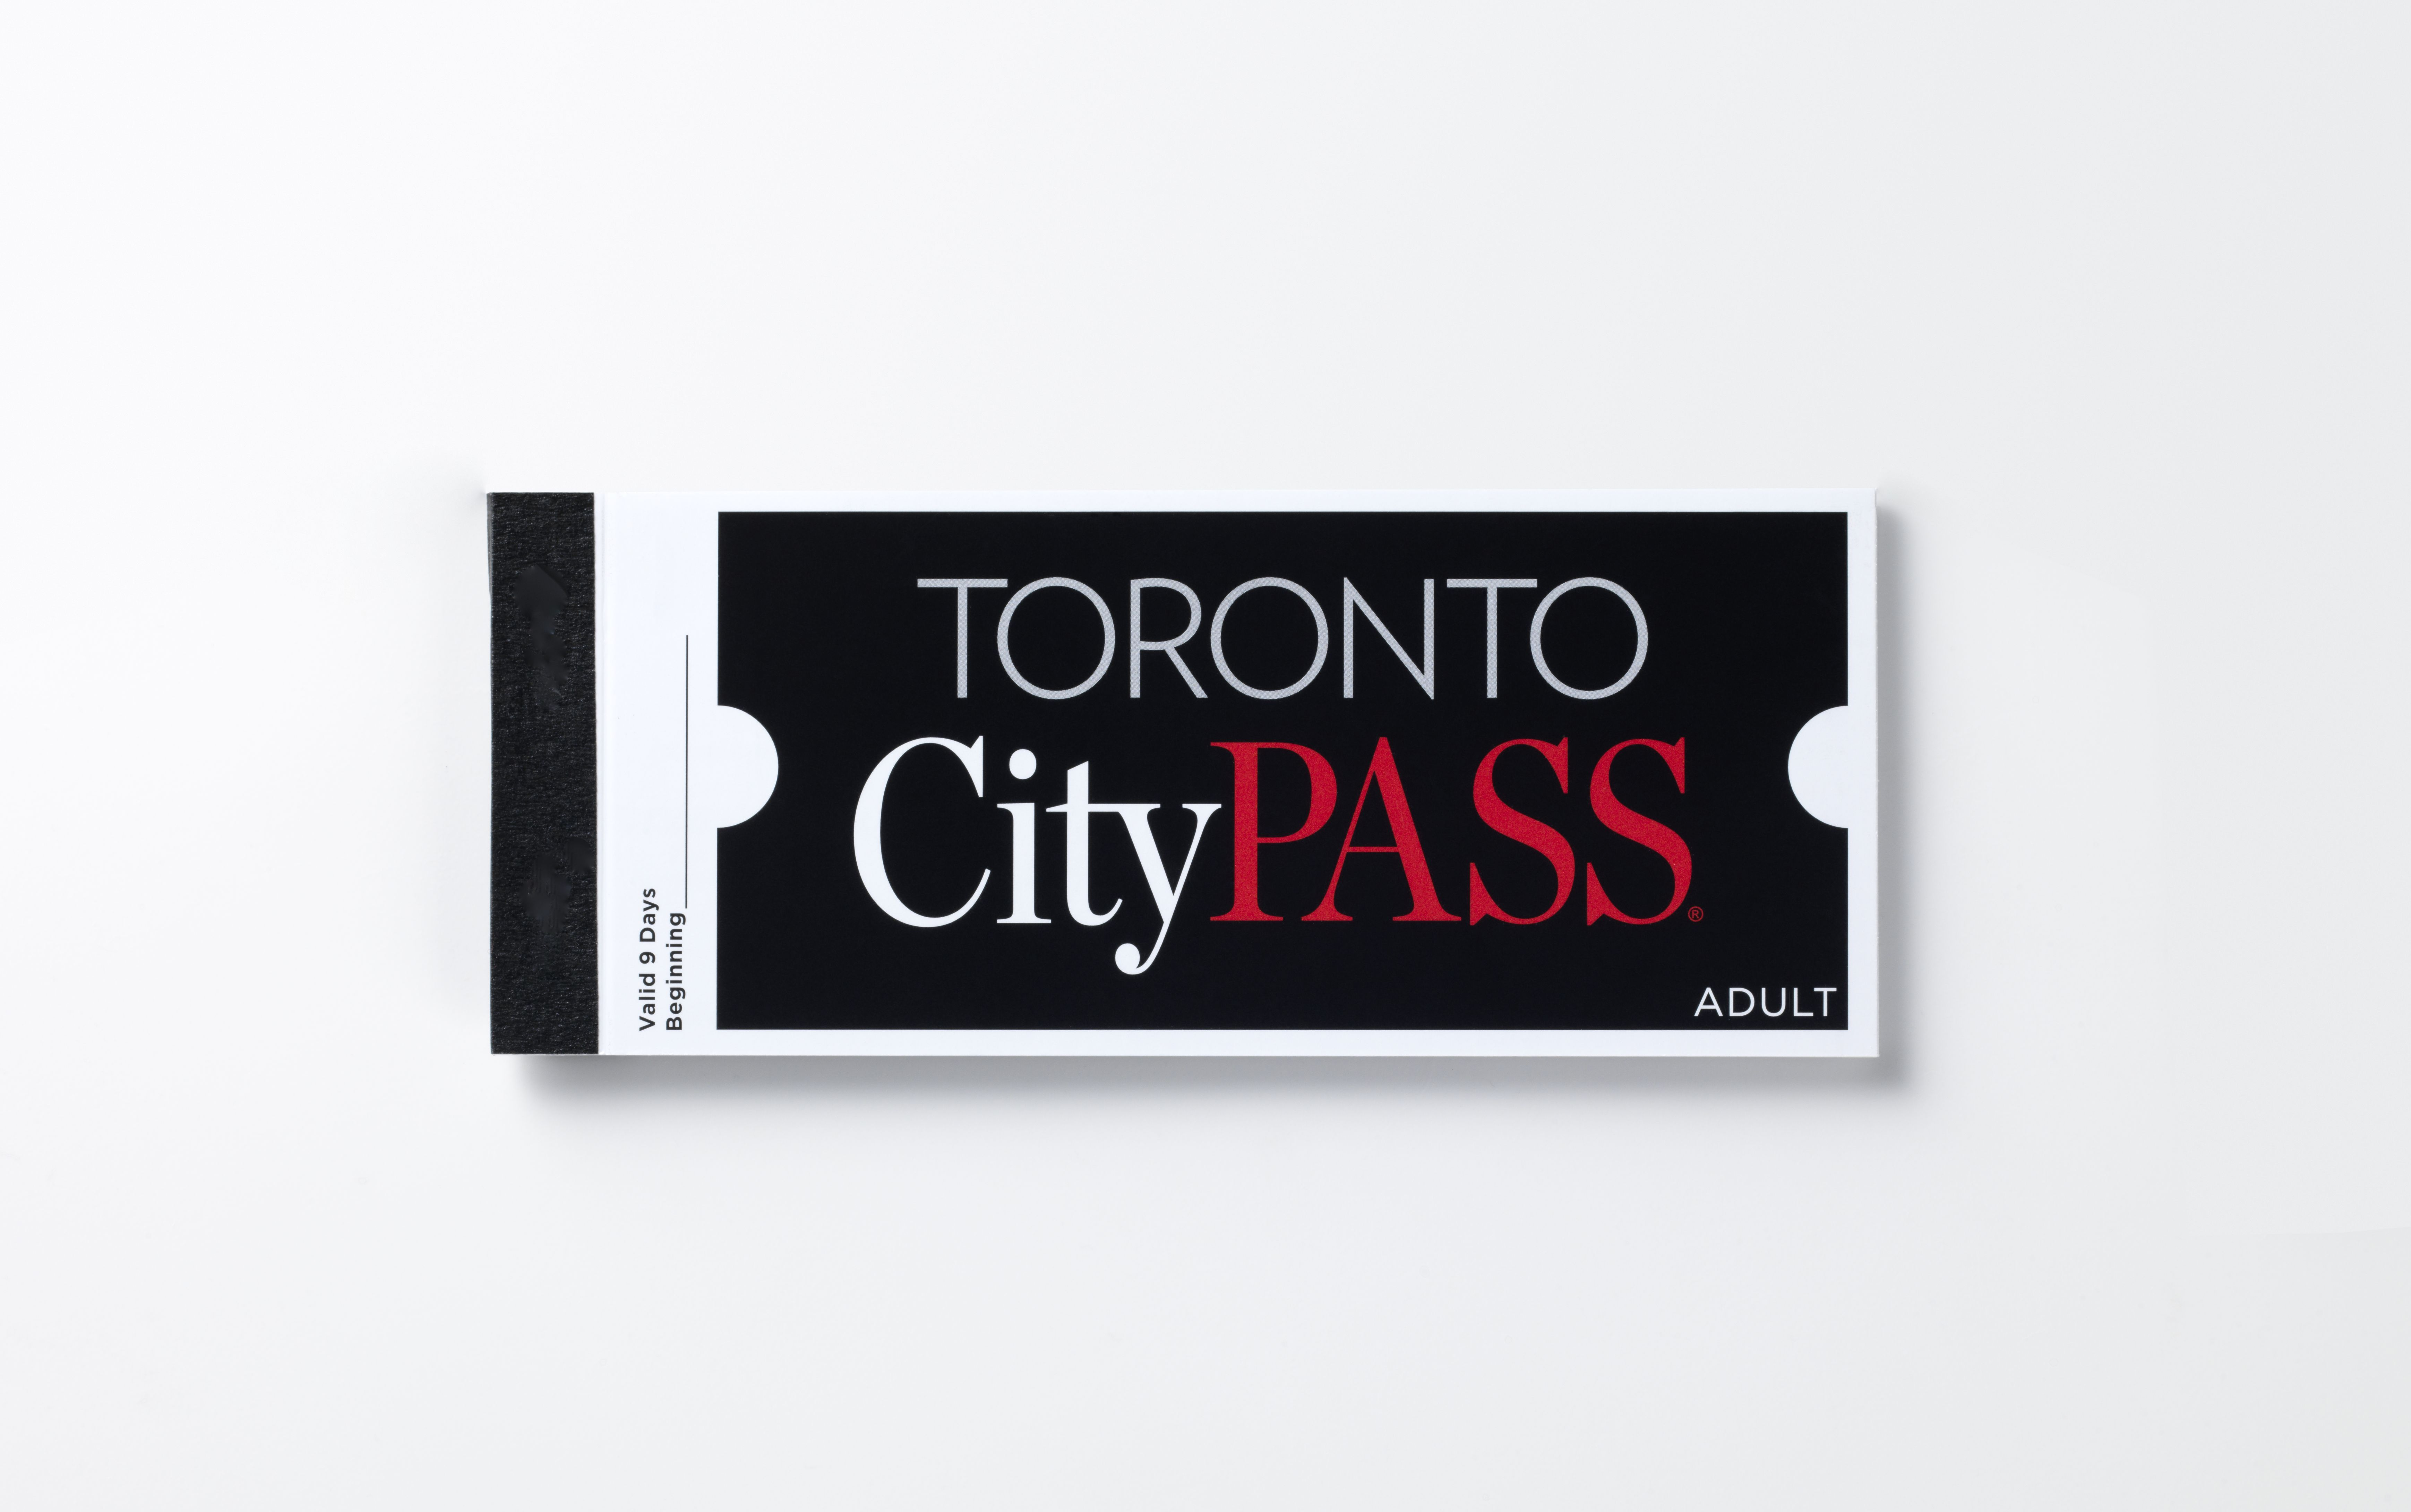 Pin By L Rolwing On Toronto New York Attractions City Pass New York City